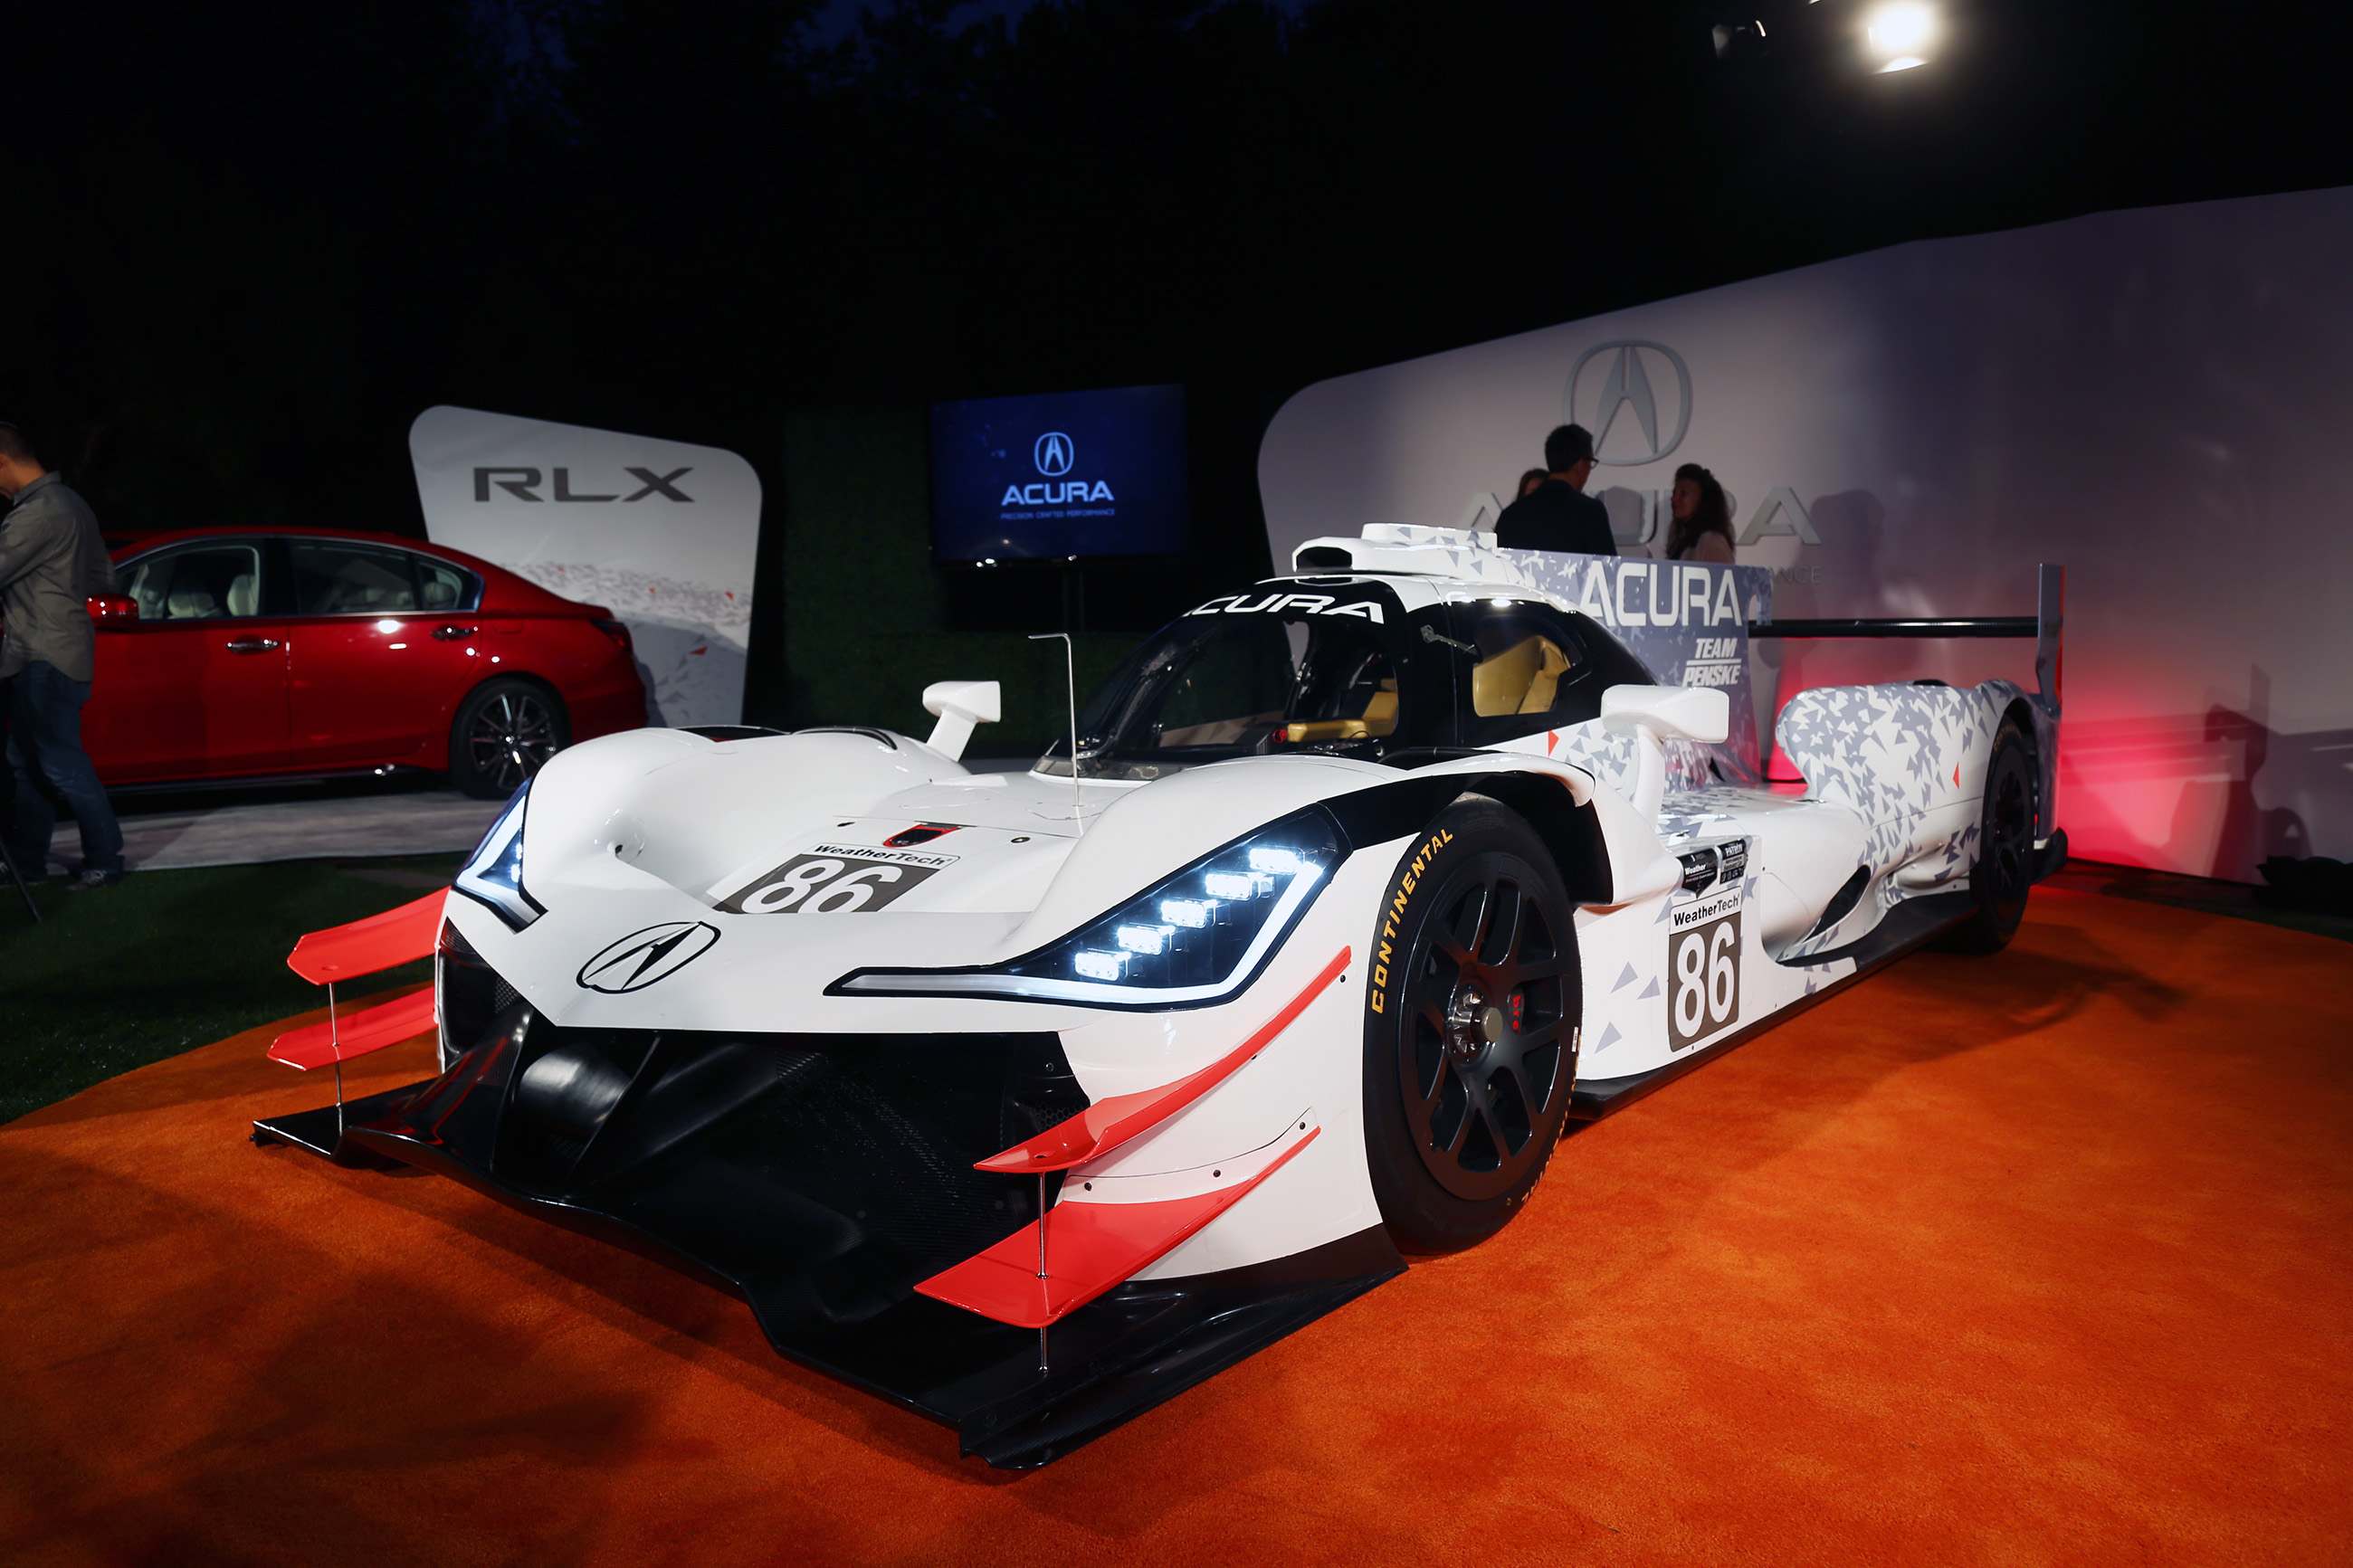 2018 acura arx 05. delighful arx acura returns to 24hour endurance racing with this mean race car and 2018 acura arx 05